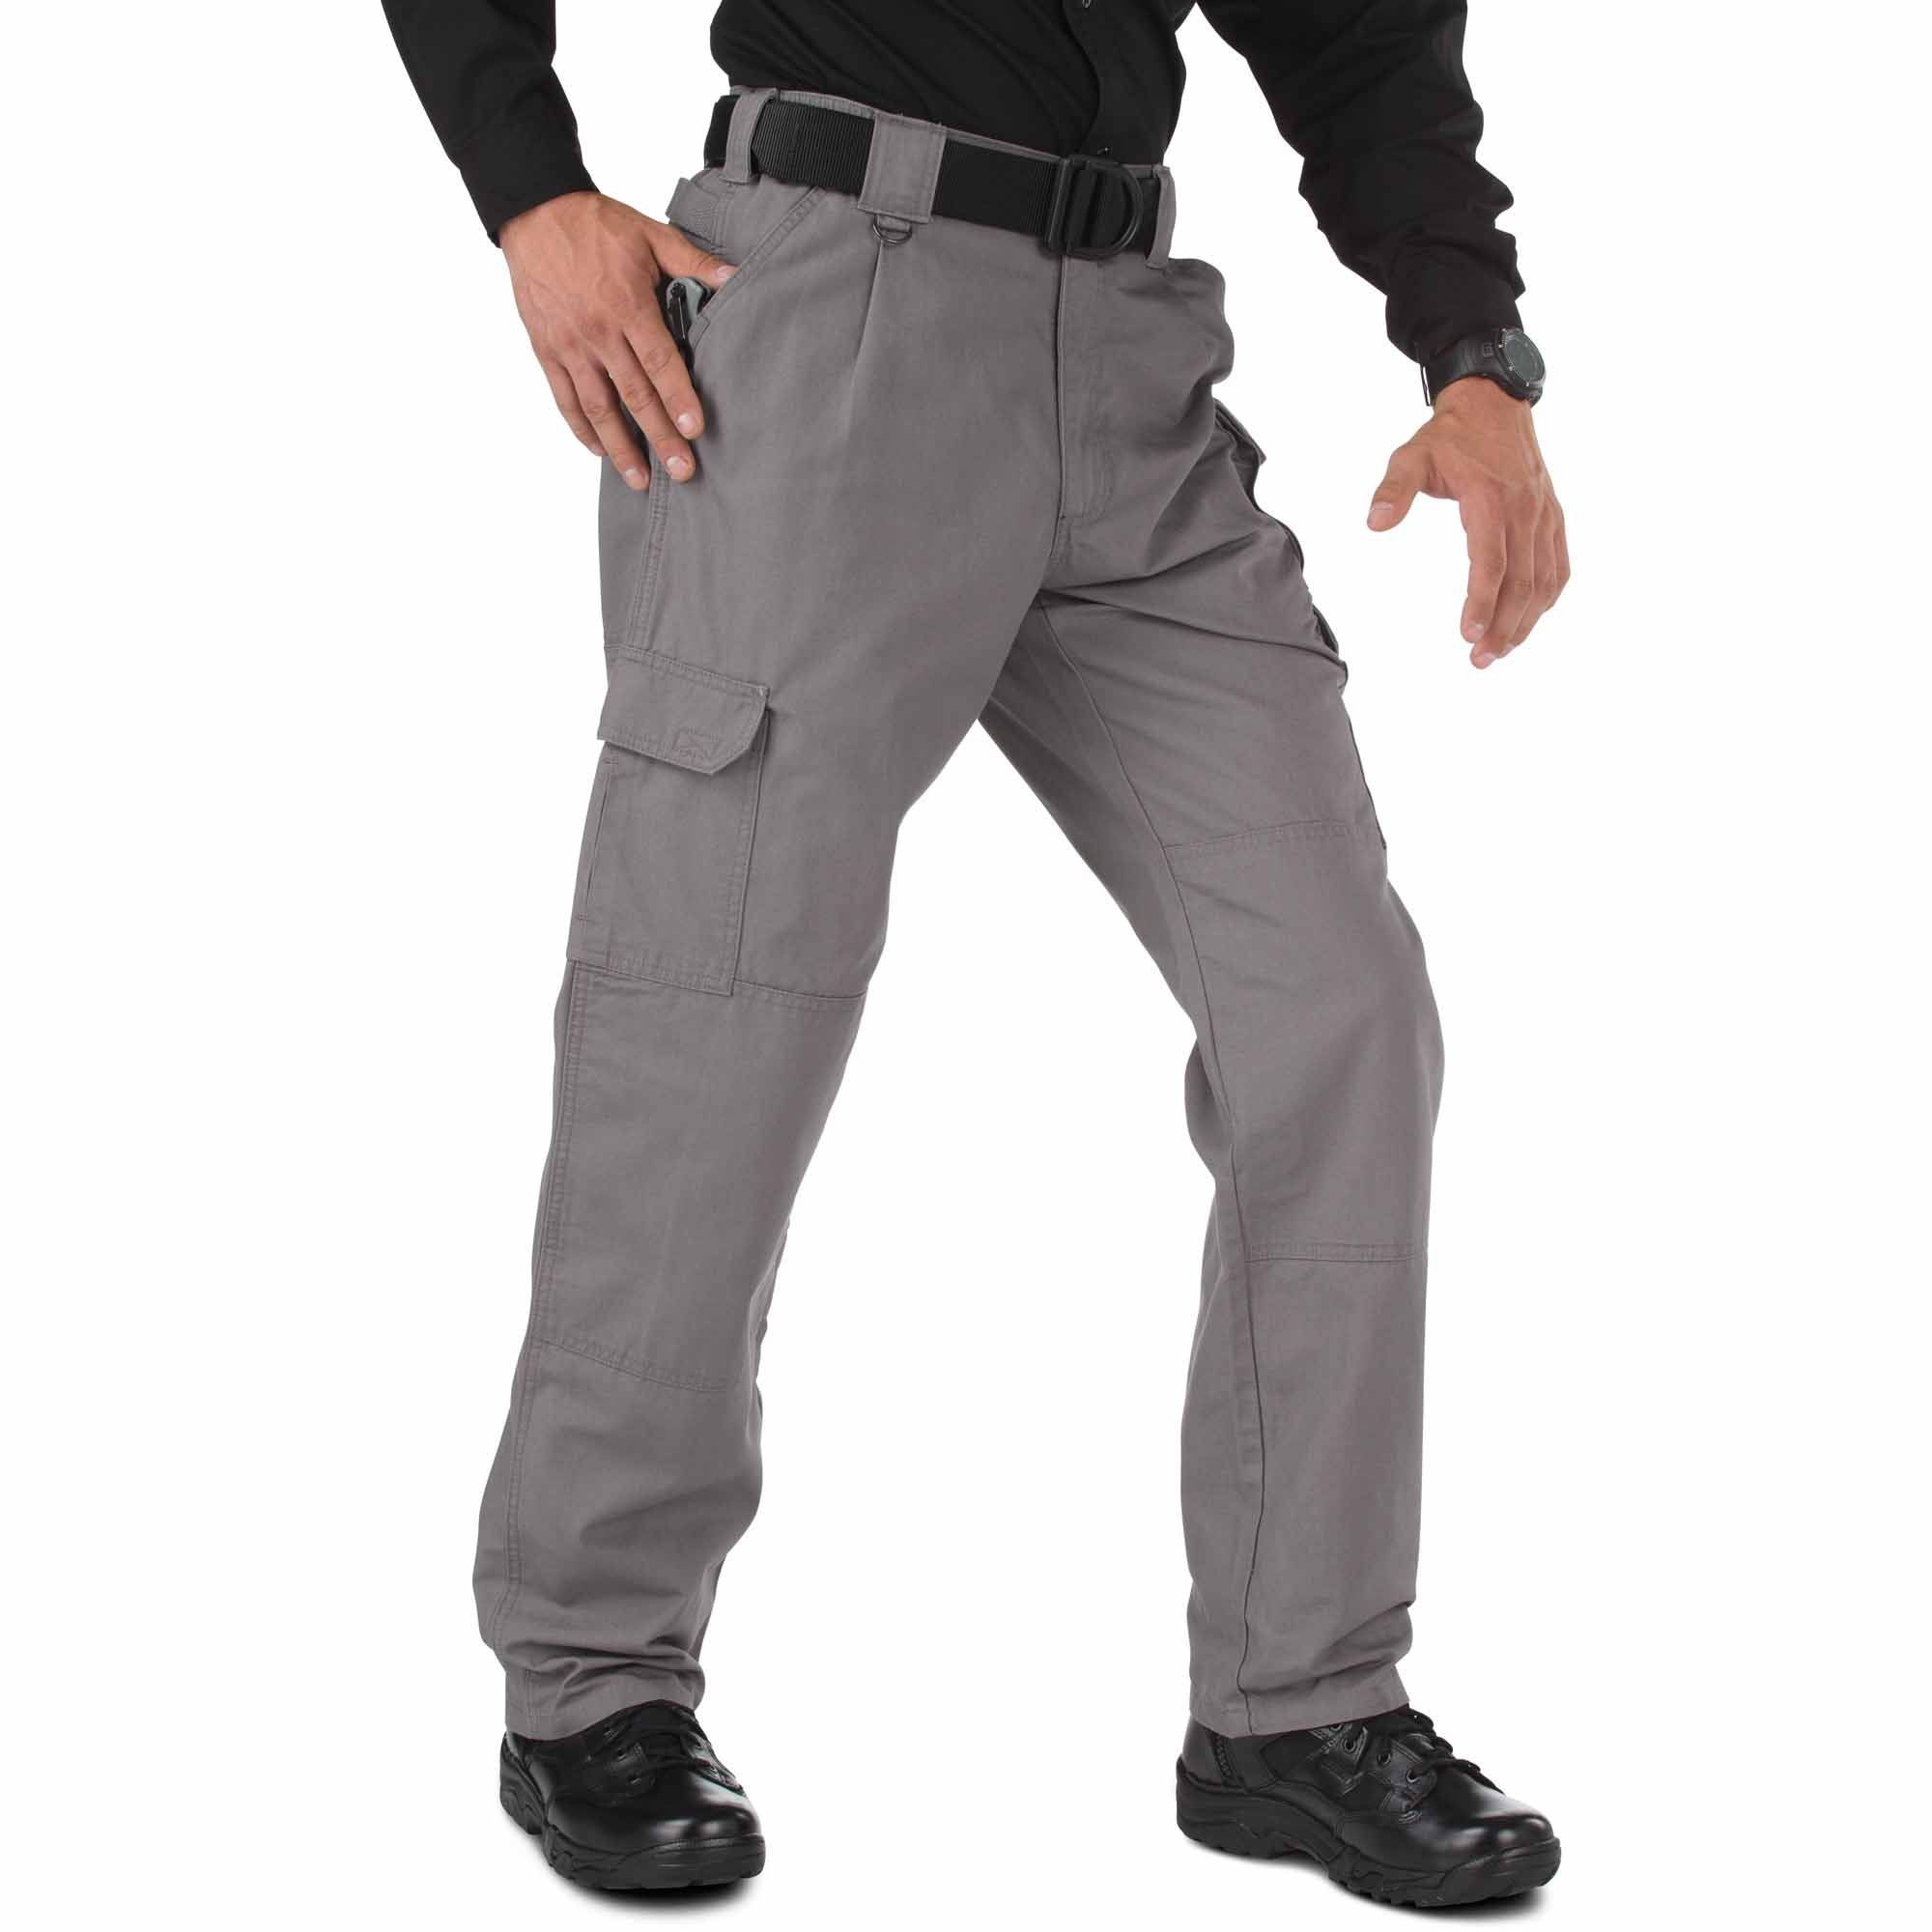 5.11 Tactical Pants,Grey,44Wx34L by 5.11